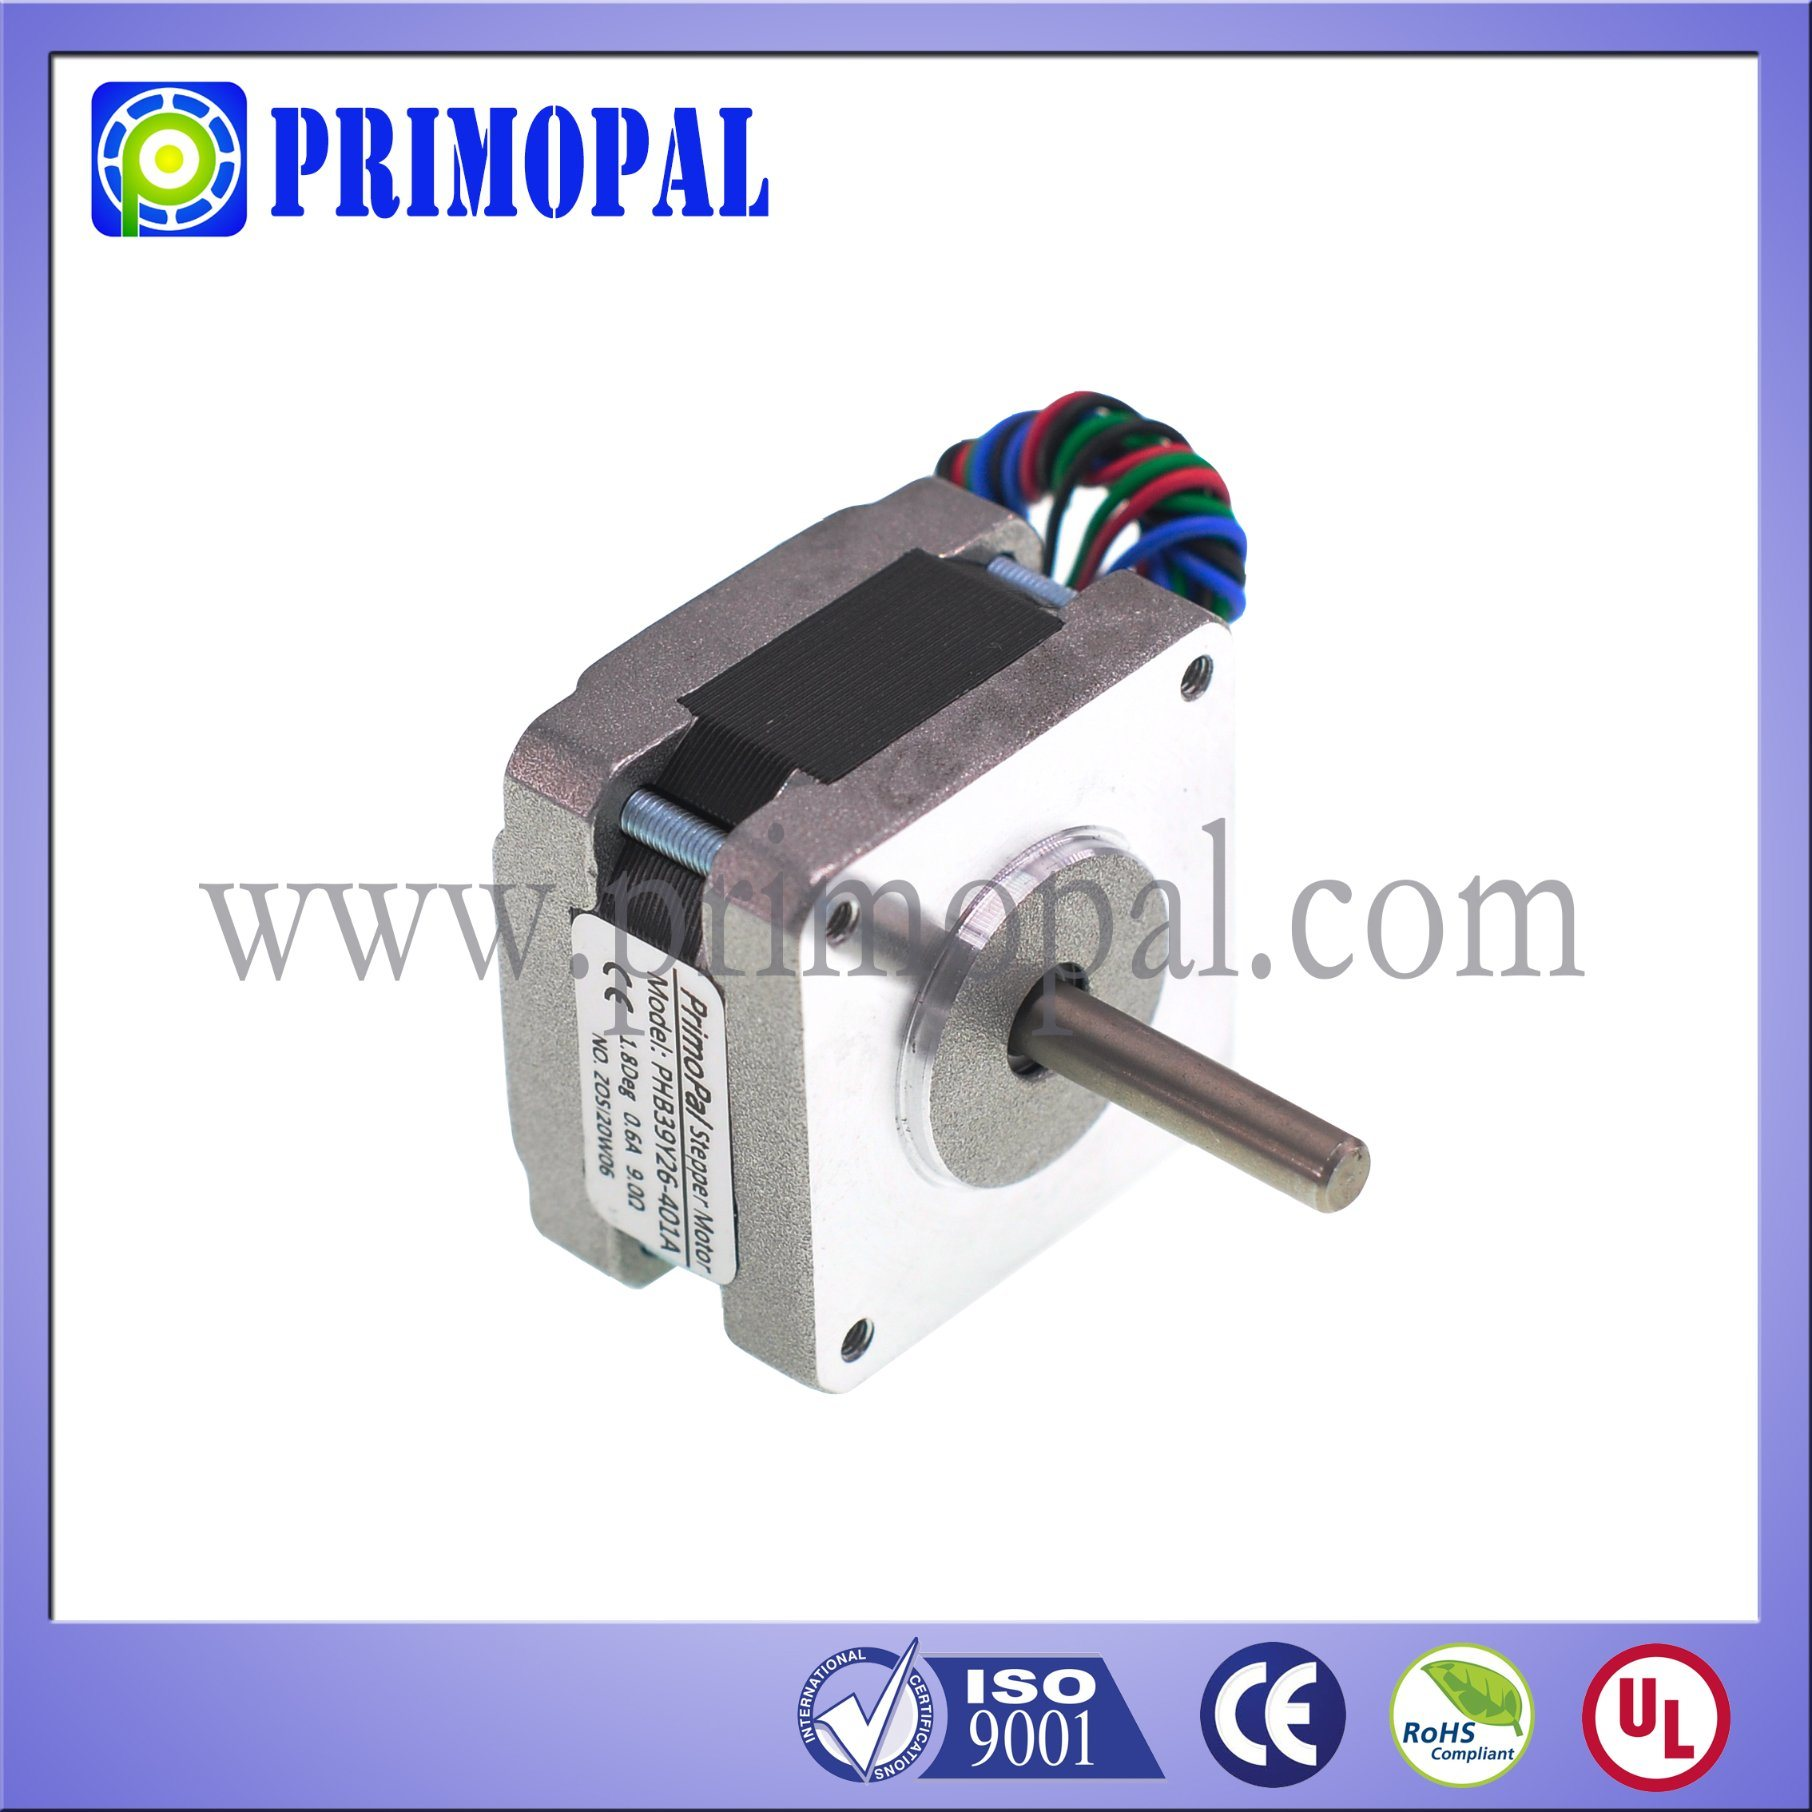 2 Phase NEMA 16 High Performance Stepper Motor for Security System